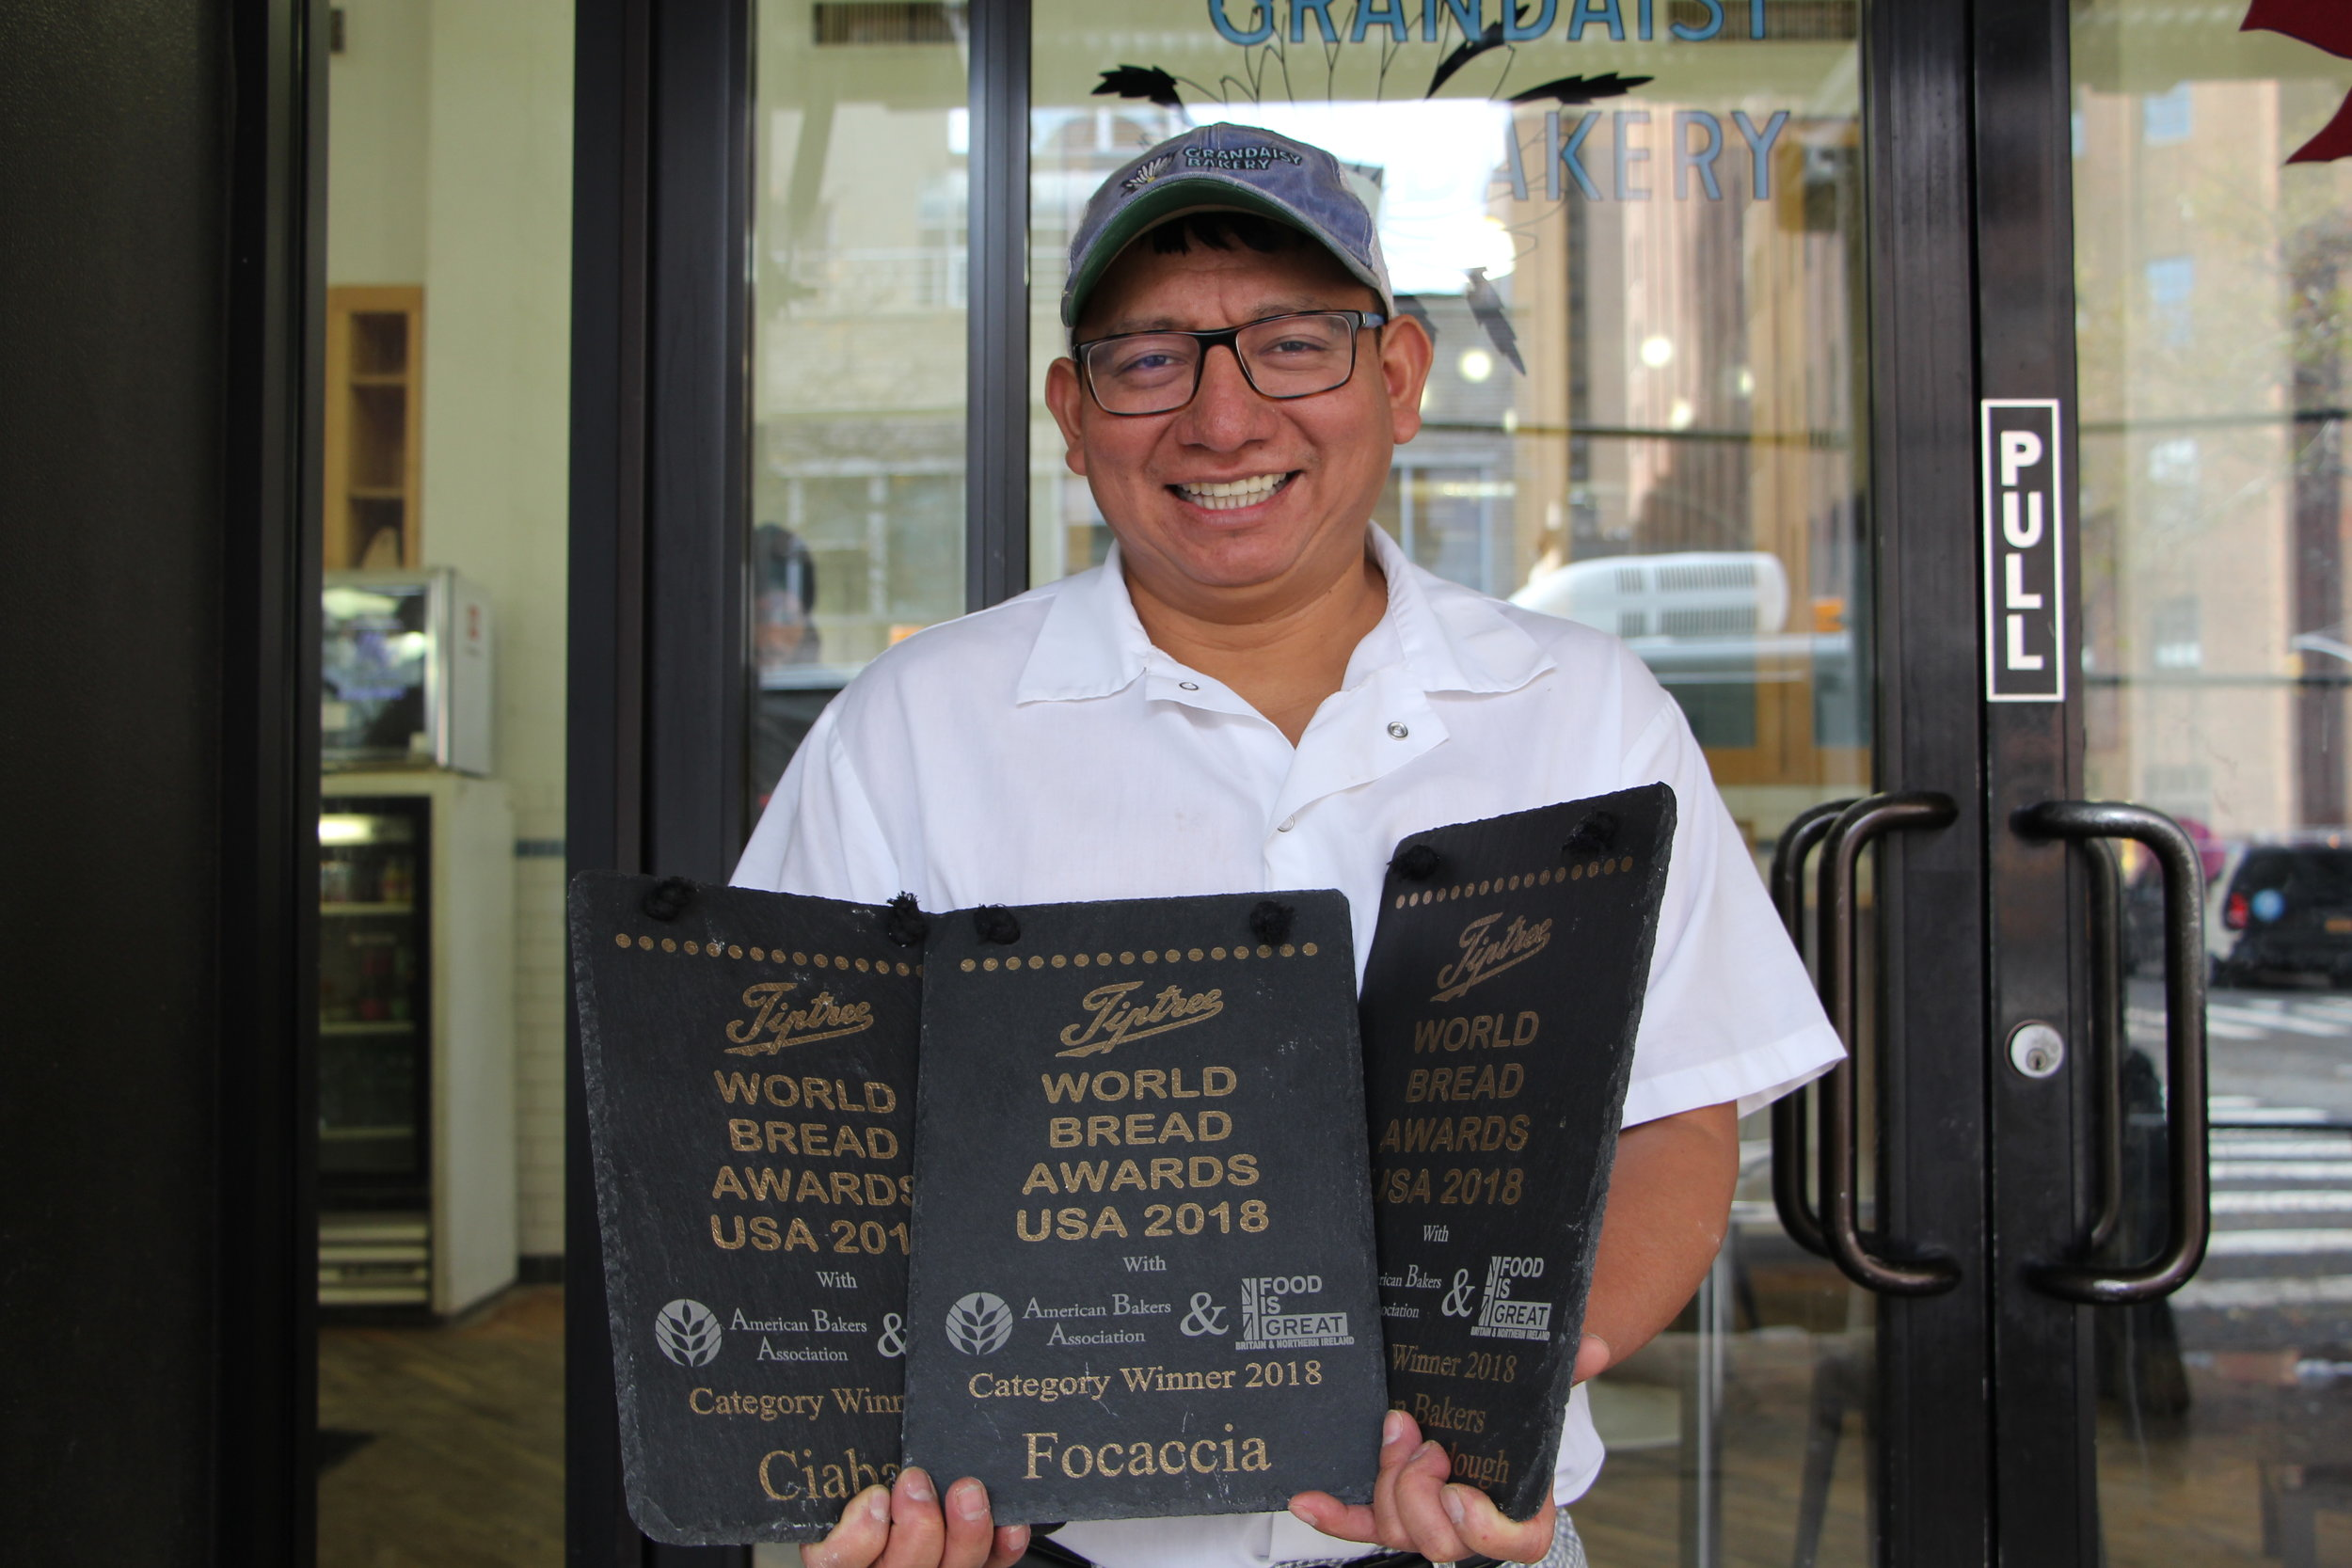 Award Winners! - Our head baker took home three of the top prizes at the Tiptree World Bread Awards USA, for our ciabatta grande, pizza bianca, and pane pugliese!